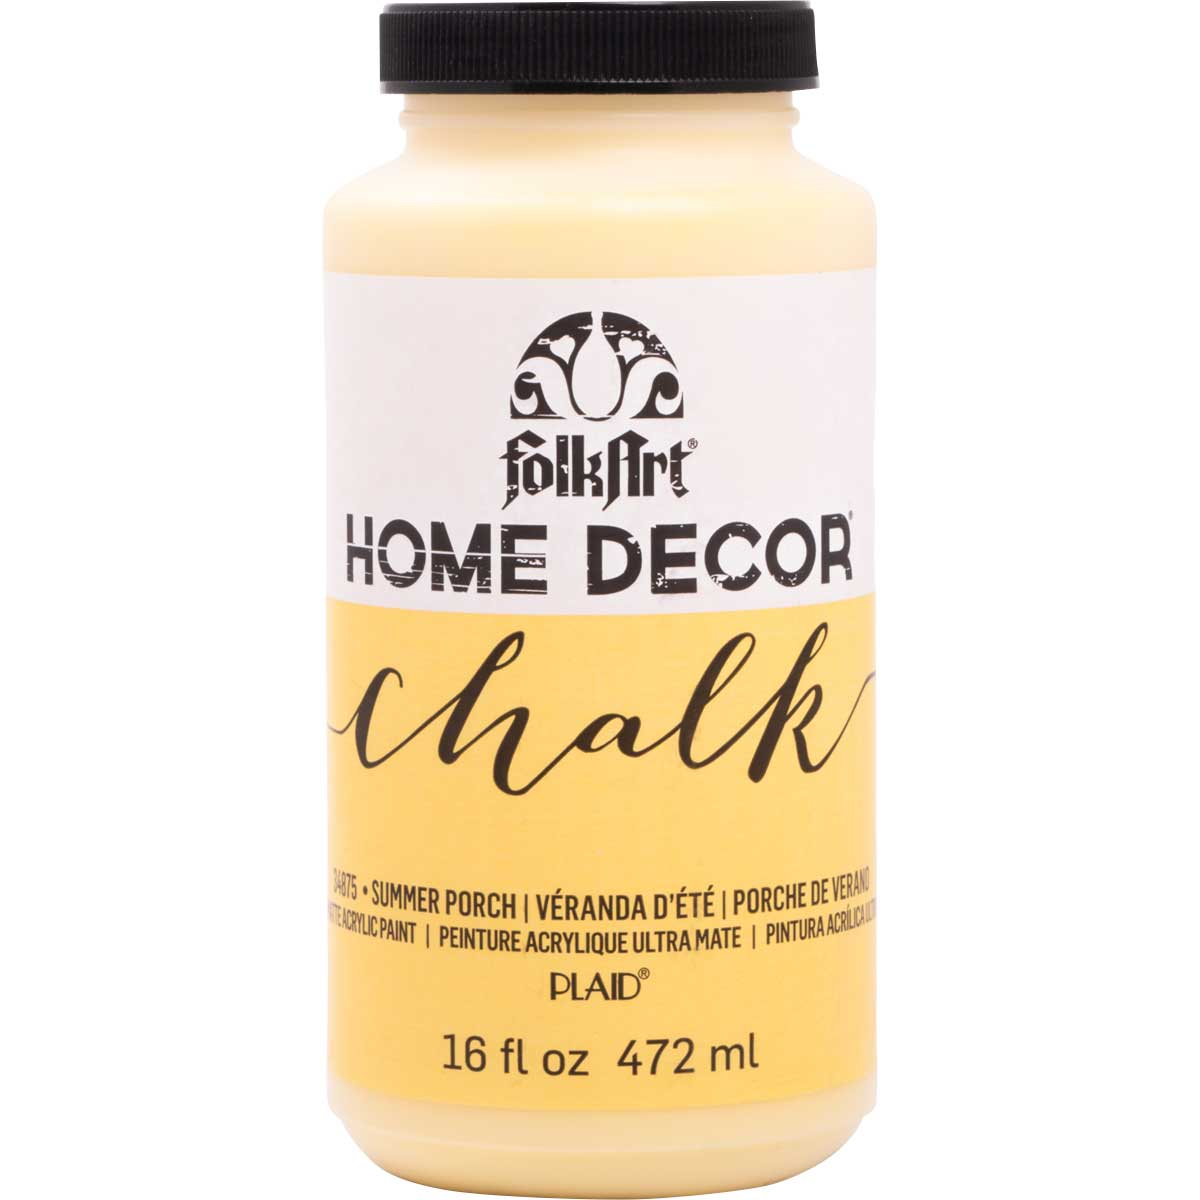 FolkArt ® Home Decor™ Chalk - Summer Porch, 16 oz. - 34875